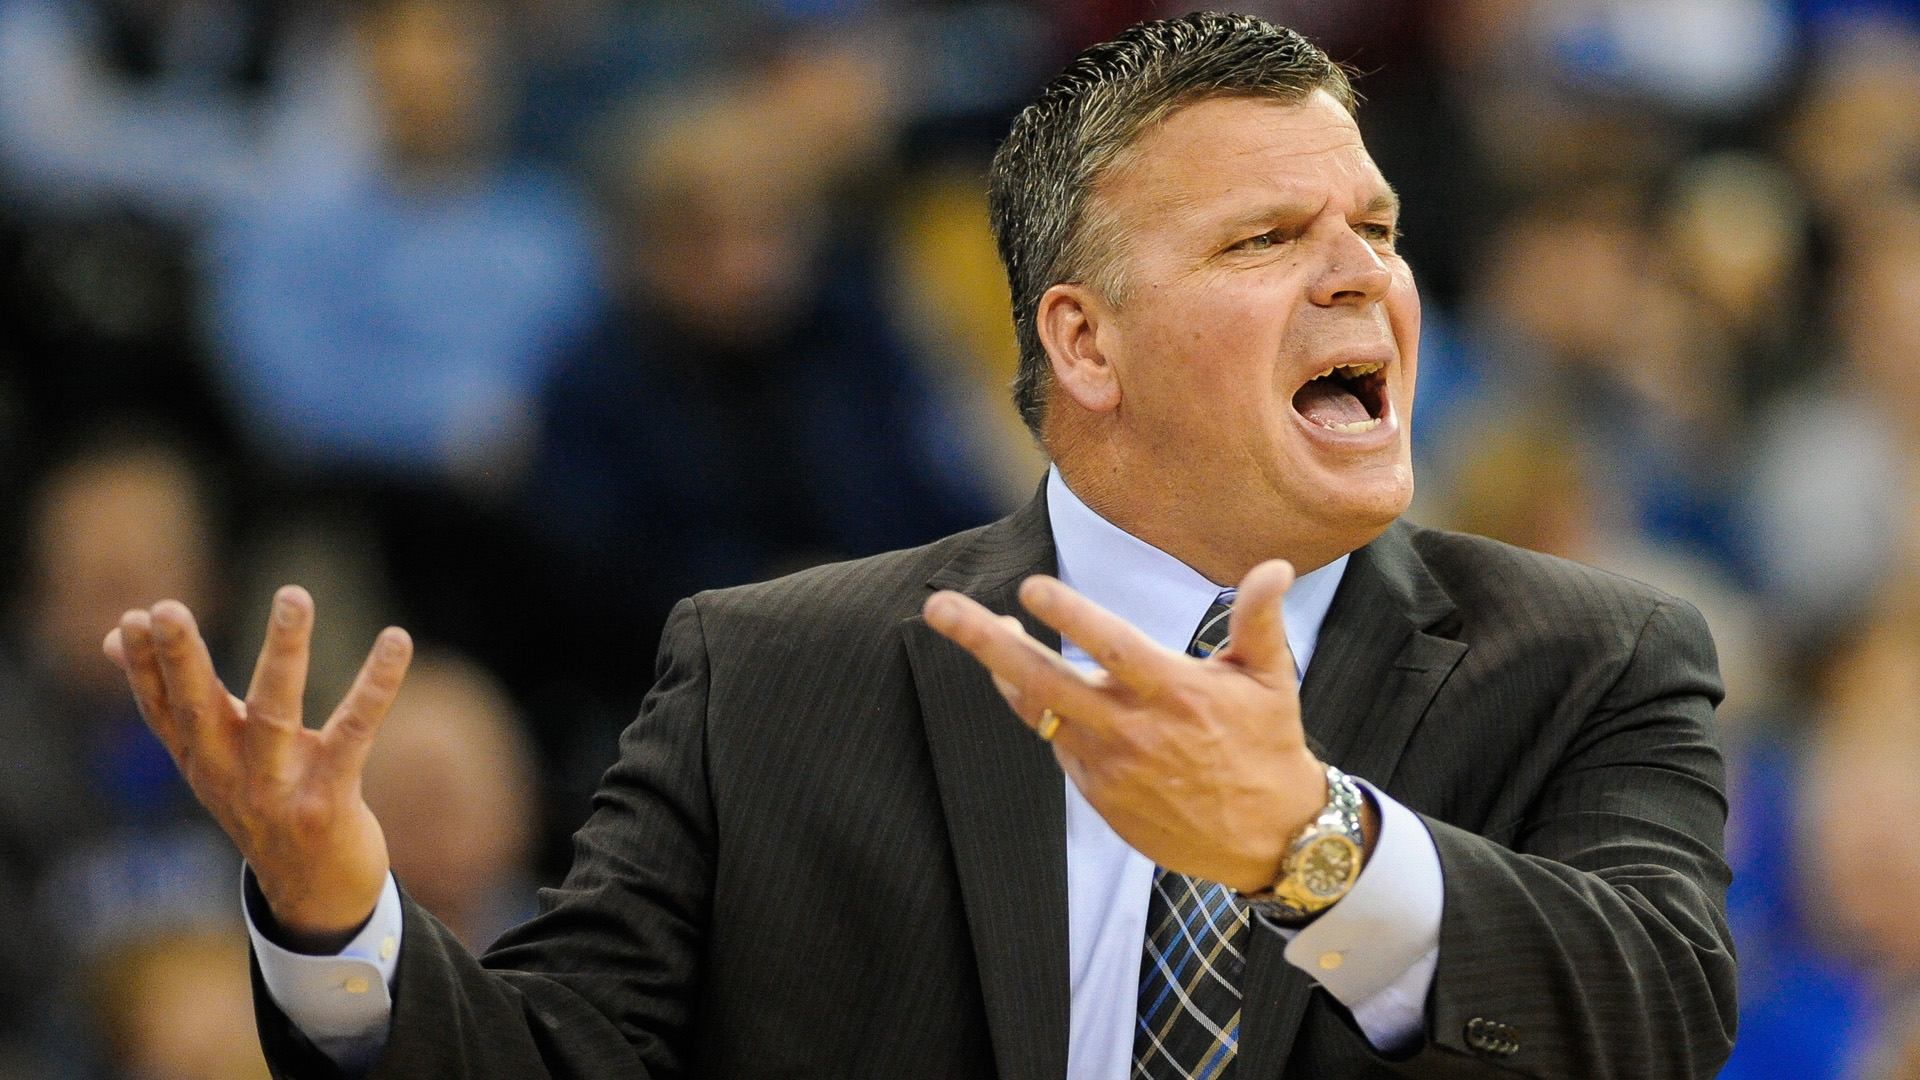 Greg McDermott turned down Ohio State basketball's head coaching job